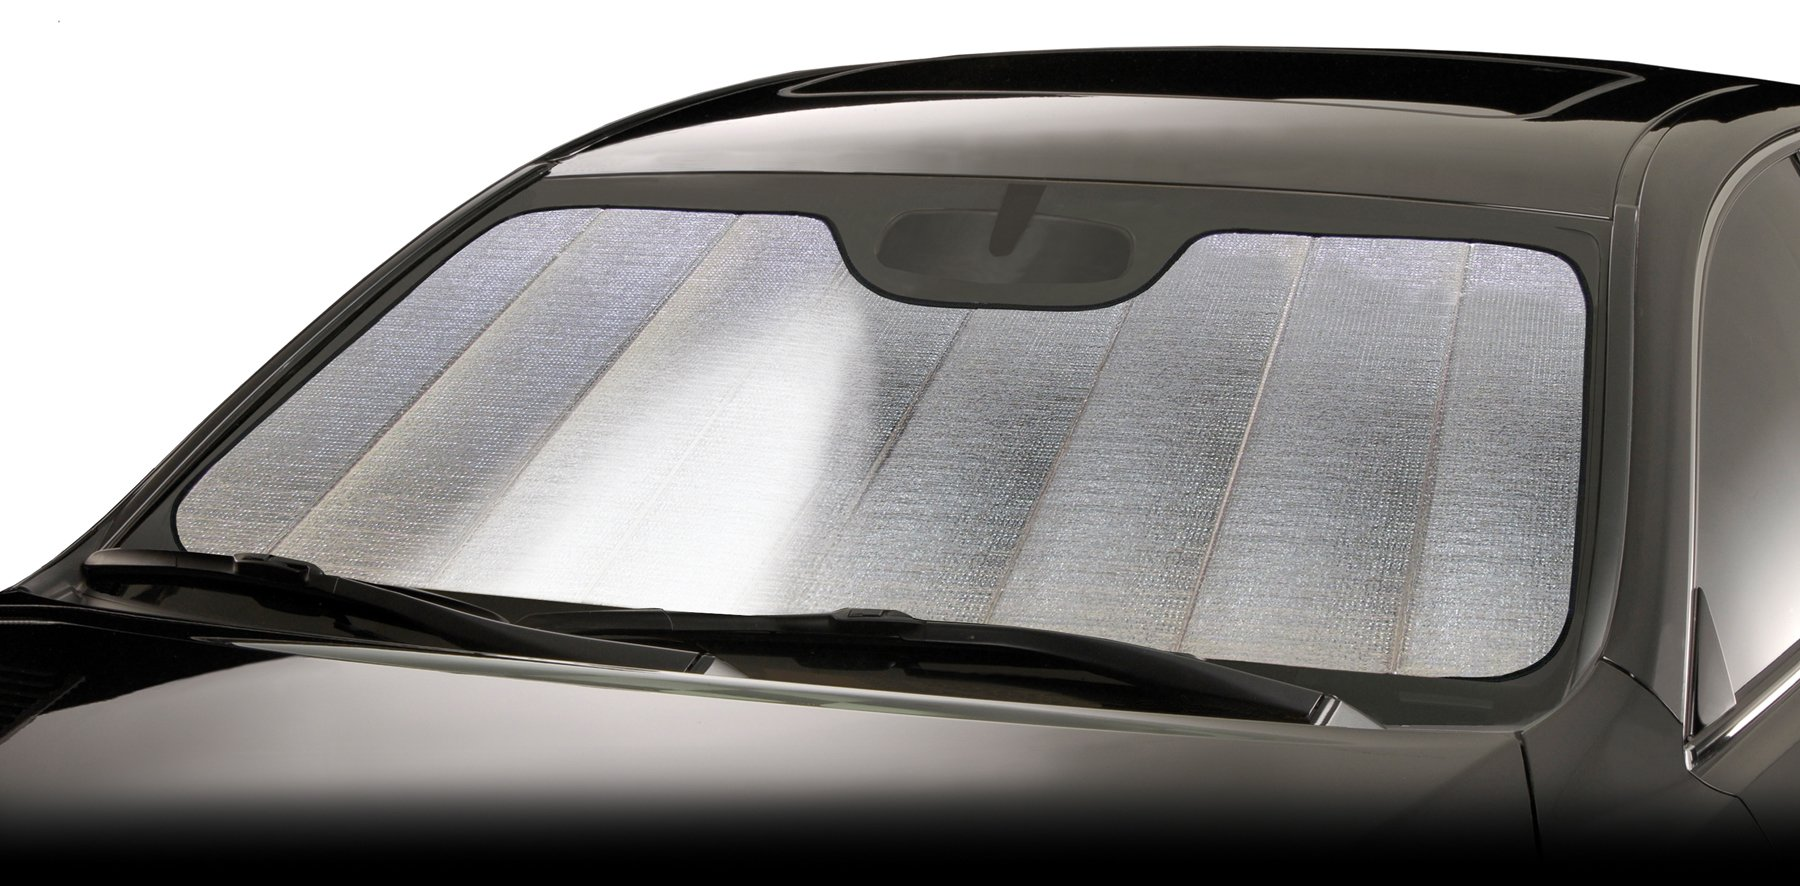 Intro-Tech SU-40A-R Silver Ultimate Reflector Custom Fit Folding Windshield Sunshade for Select Subaru Outback Models, w/Sensor by Intro-Tech Automotive (Image #7)